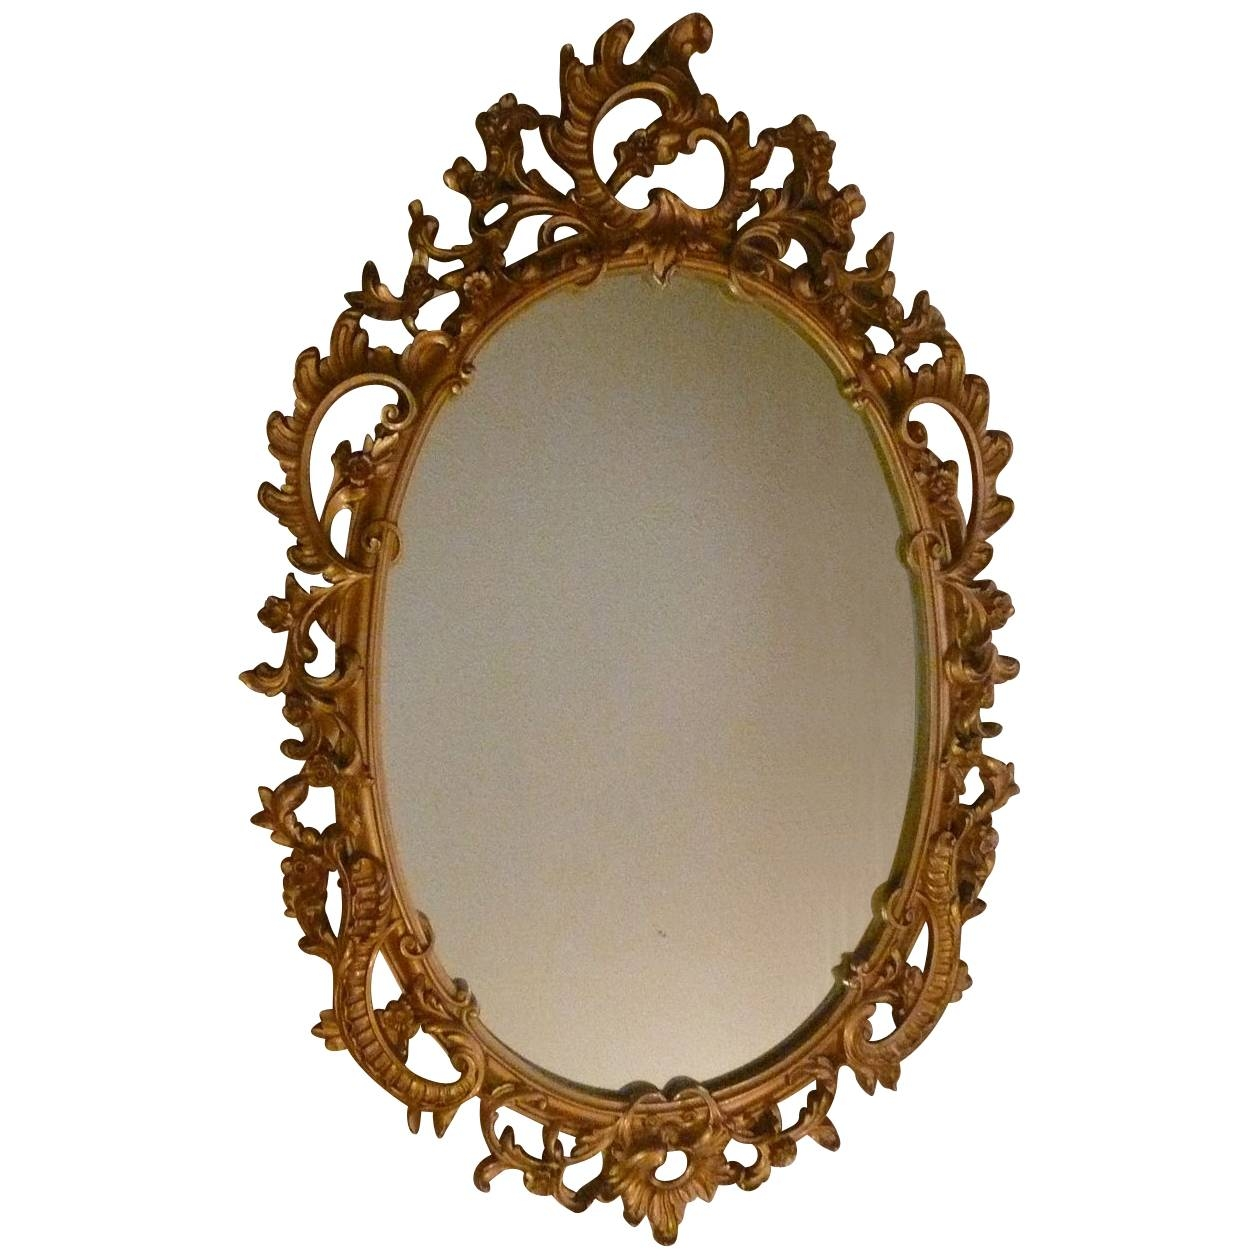 Syroco Wood Composite Mirror With Ornate Scroll From Artgate On throughout Ornate Oval Mirrors (Image 21 of 25)